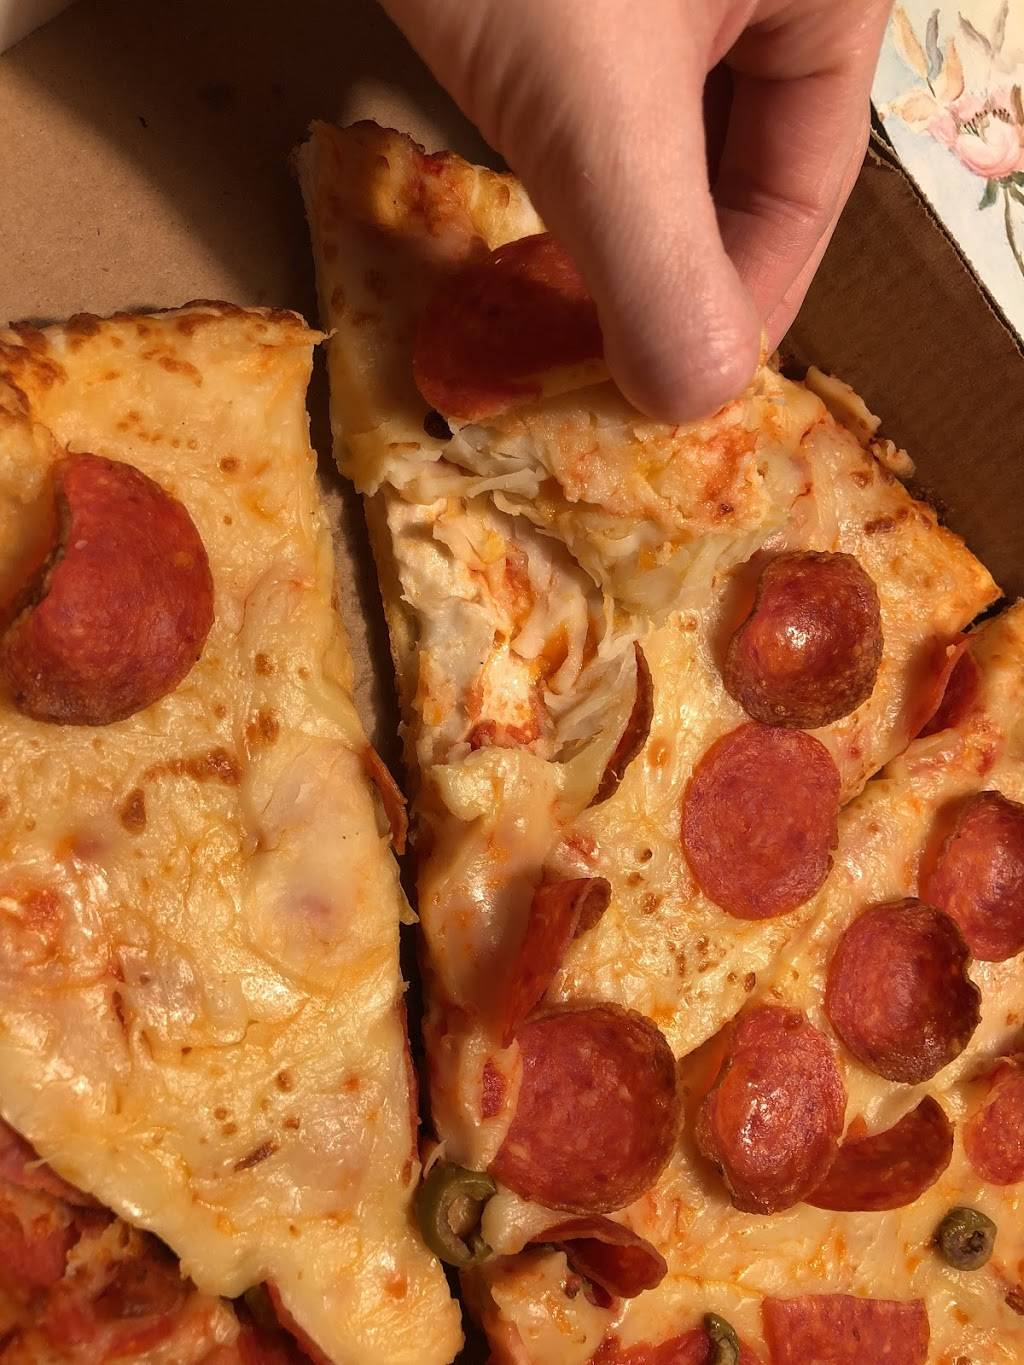 Titos Pizza | meal delivery | 21 McKay St, Cambridge, ON N1R 4G2, Canada | 5197409494 OR +1 519-740-9494